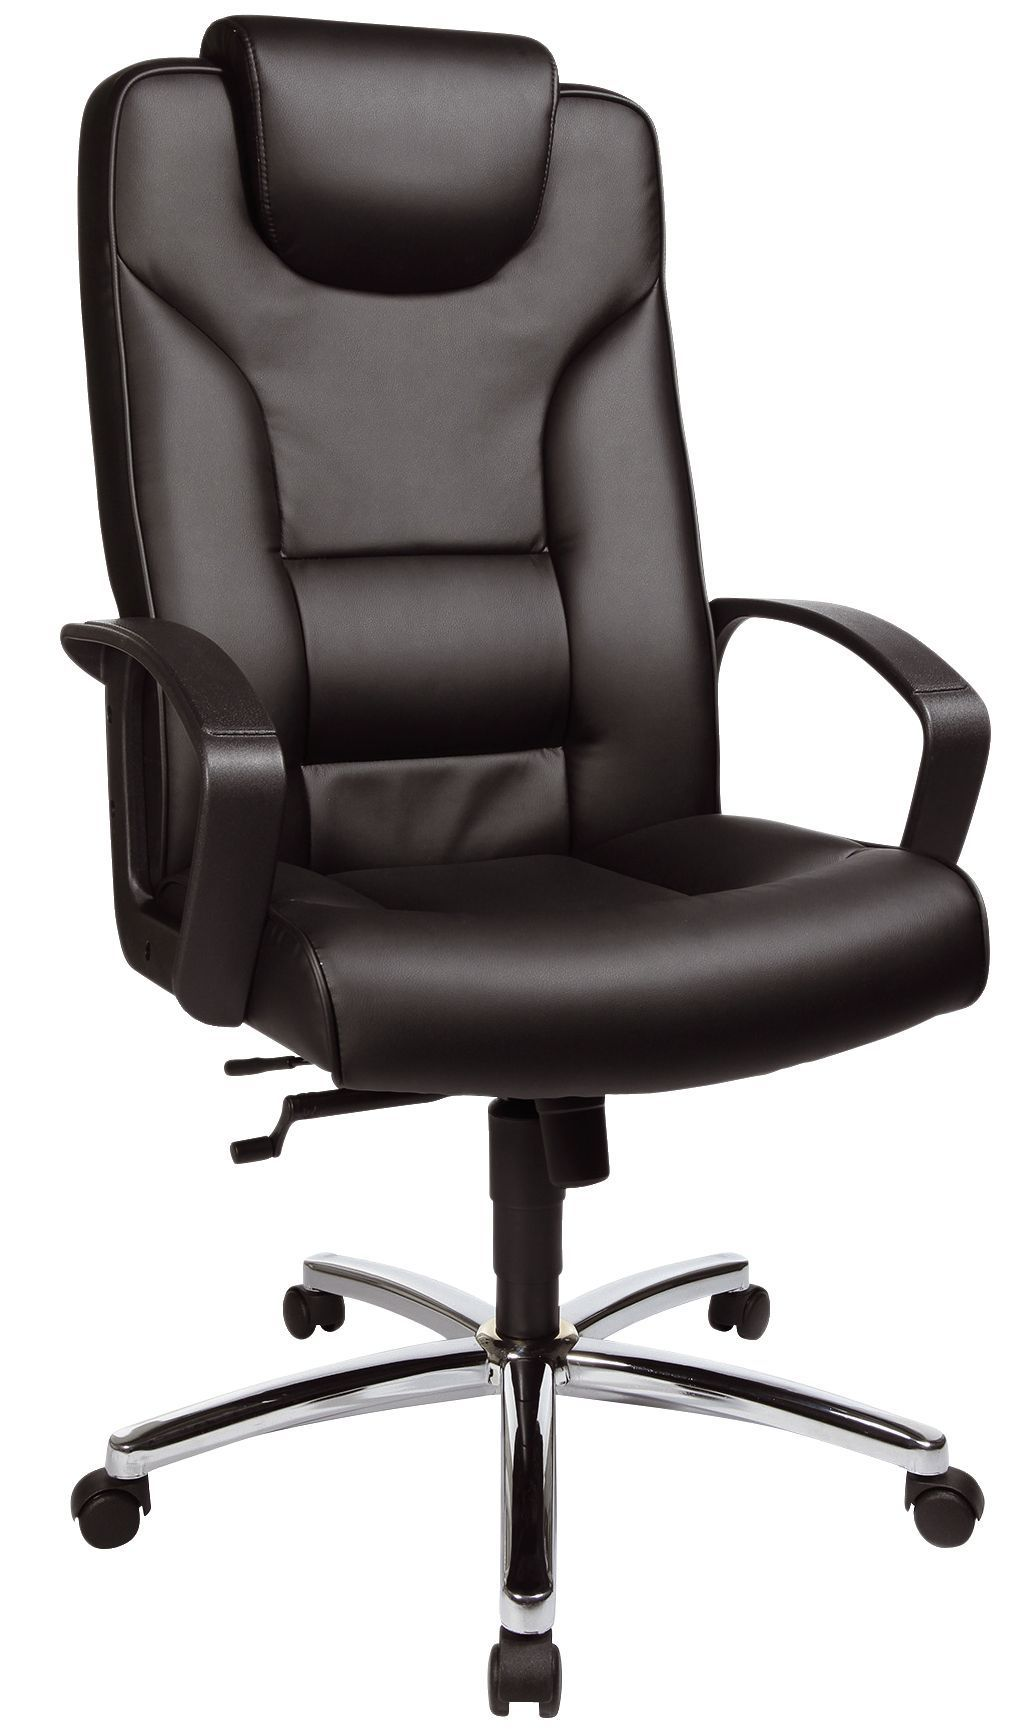 Chefsessel Comfort Point 50, schwarz